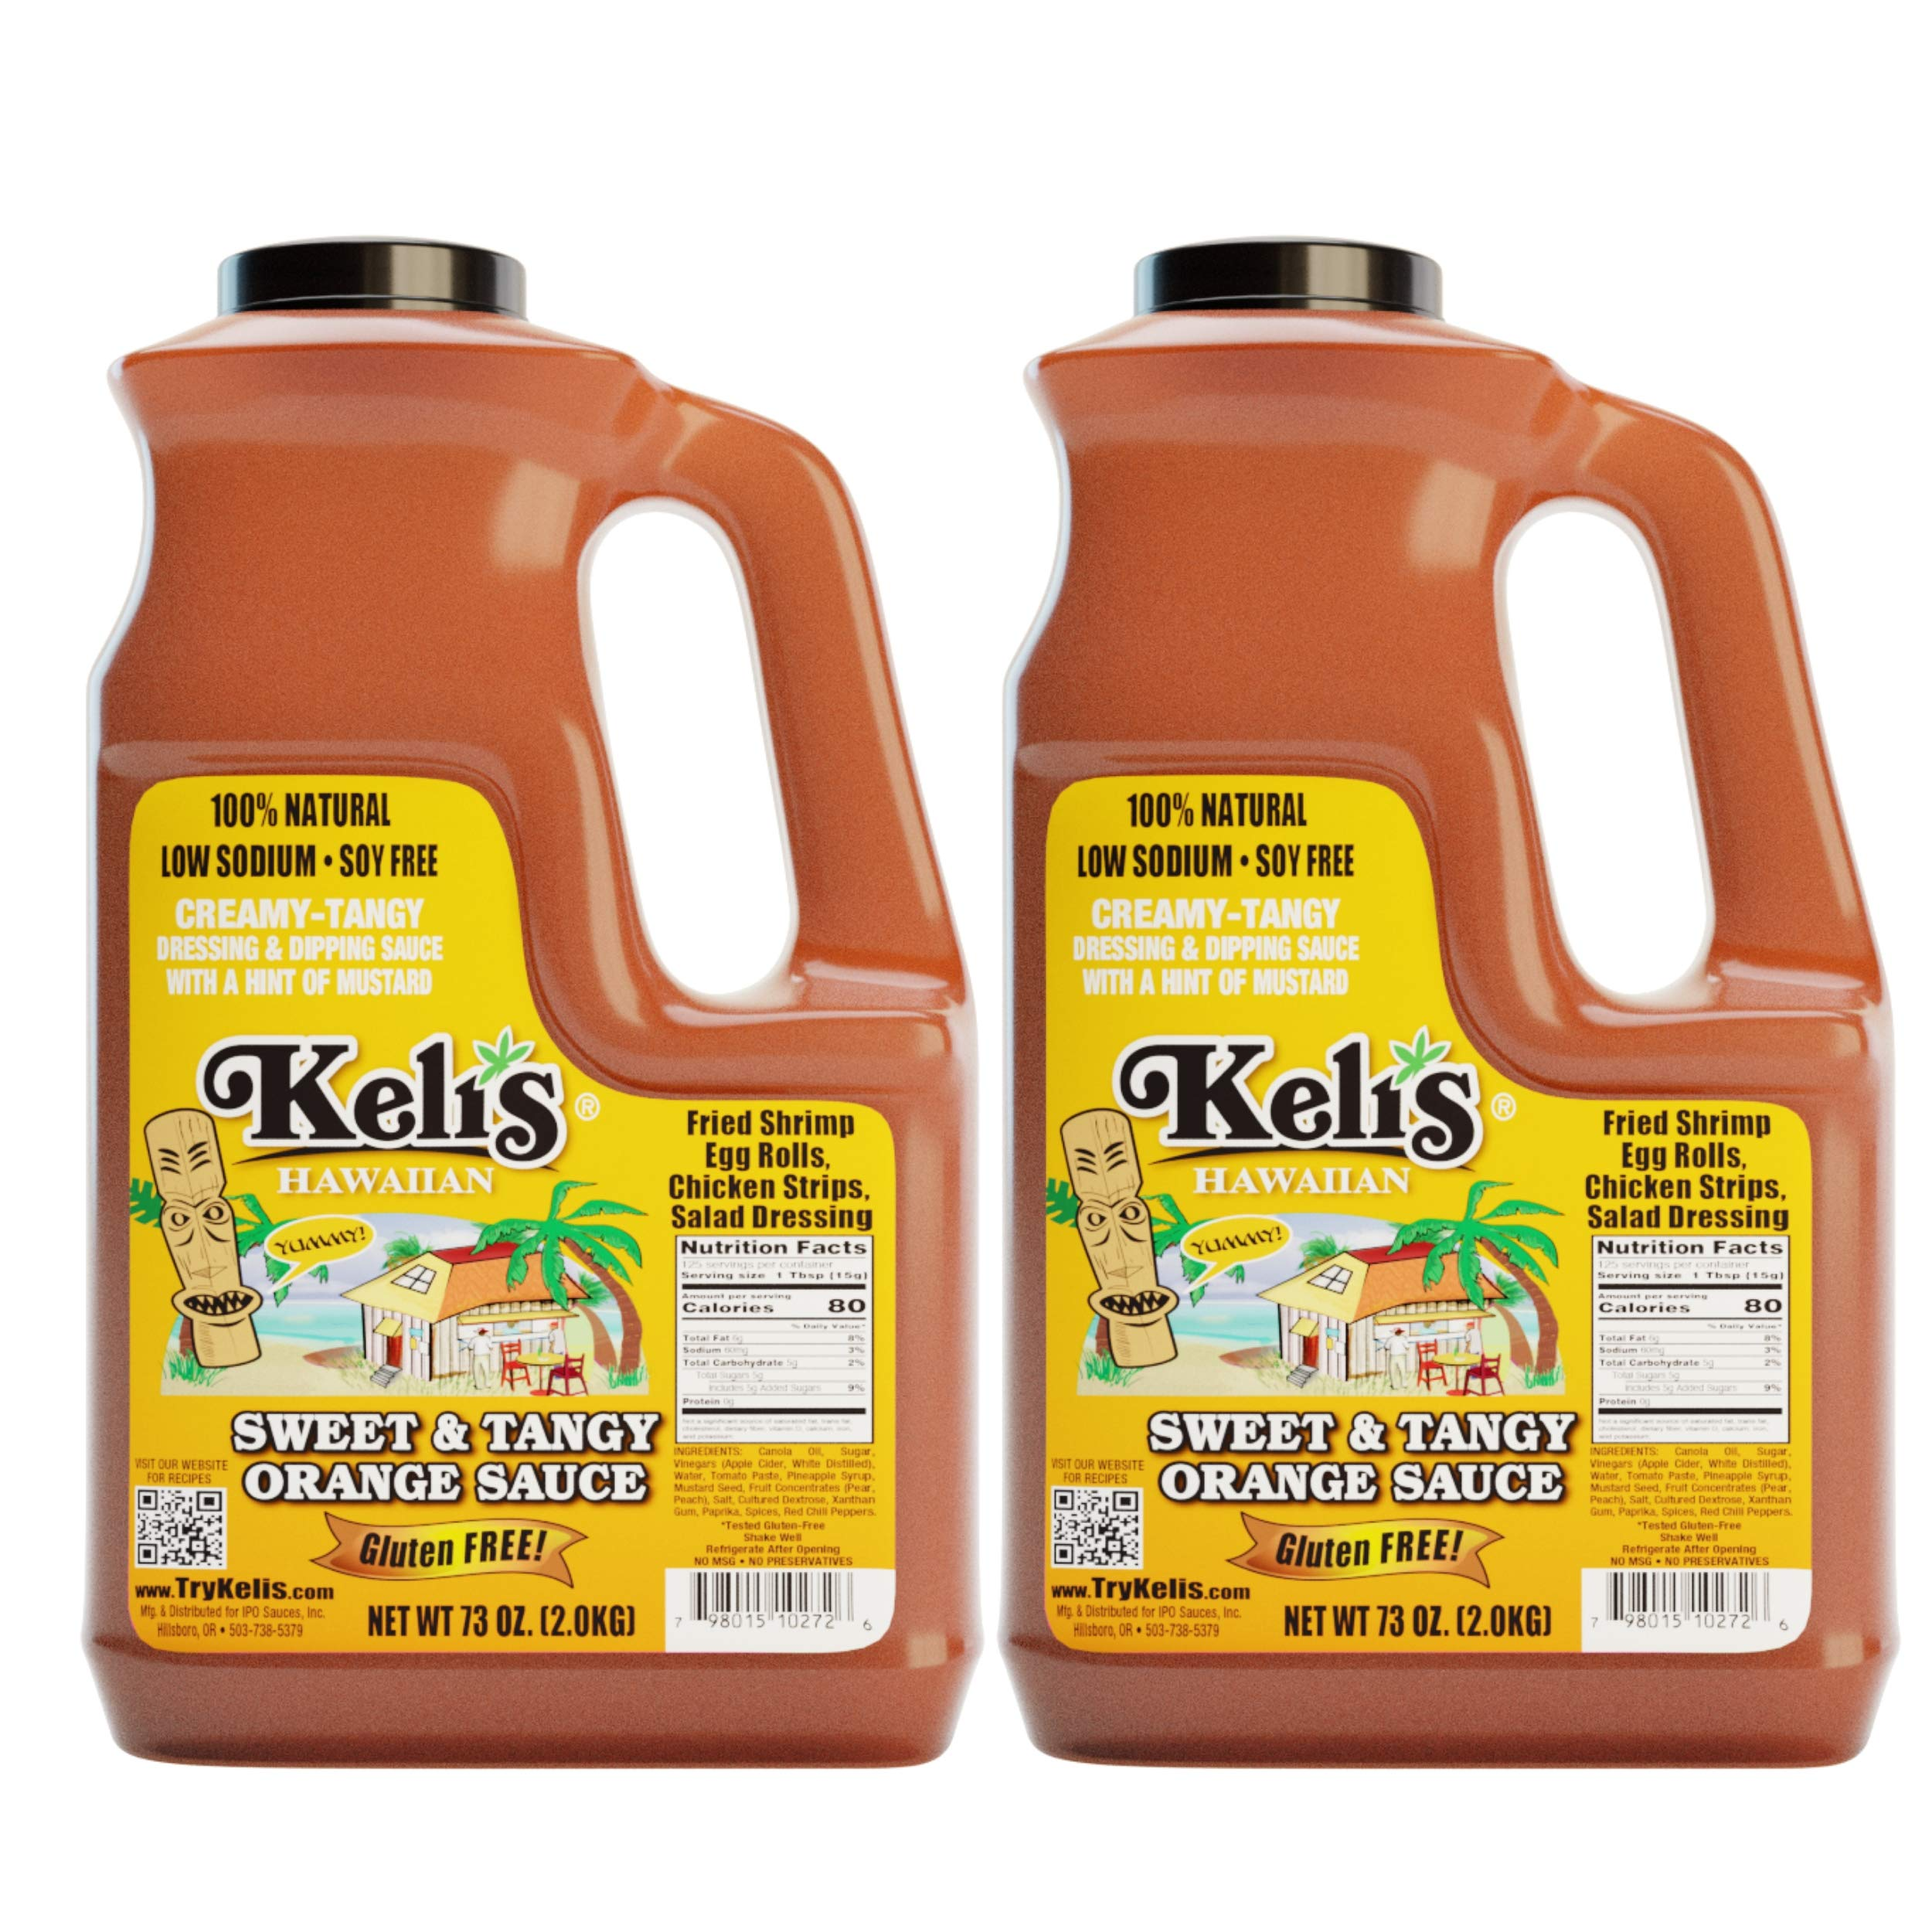 Keli's Sweet & Tangy Orange Sauce. Vegan Polynesian Sweet & Sour, Soy Free Creamy Salad Dressing, Glazing and Dipping Sauce with a hint of Mustard. All Natural, Gluten Free & No Preservatives. (72oz) by Keli's